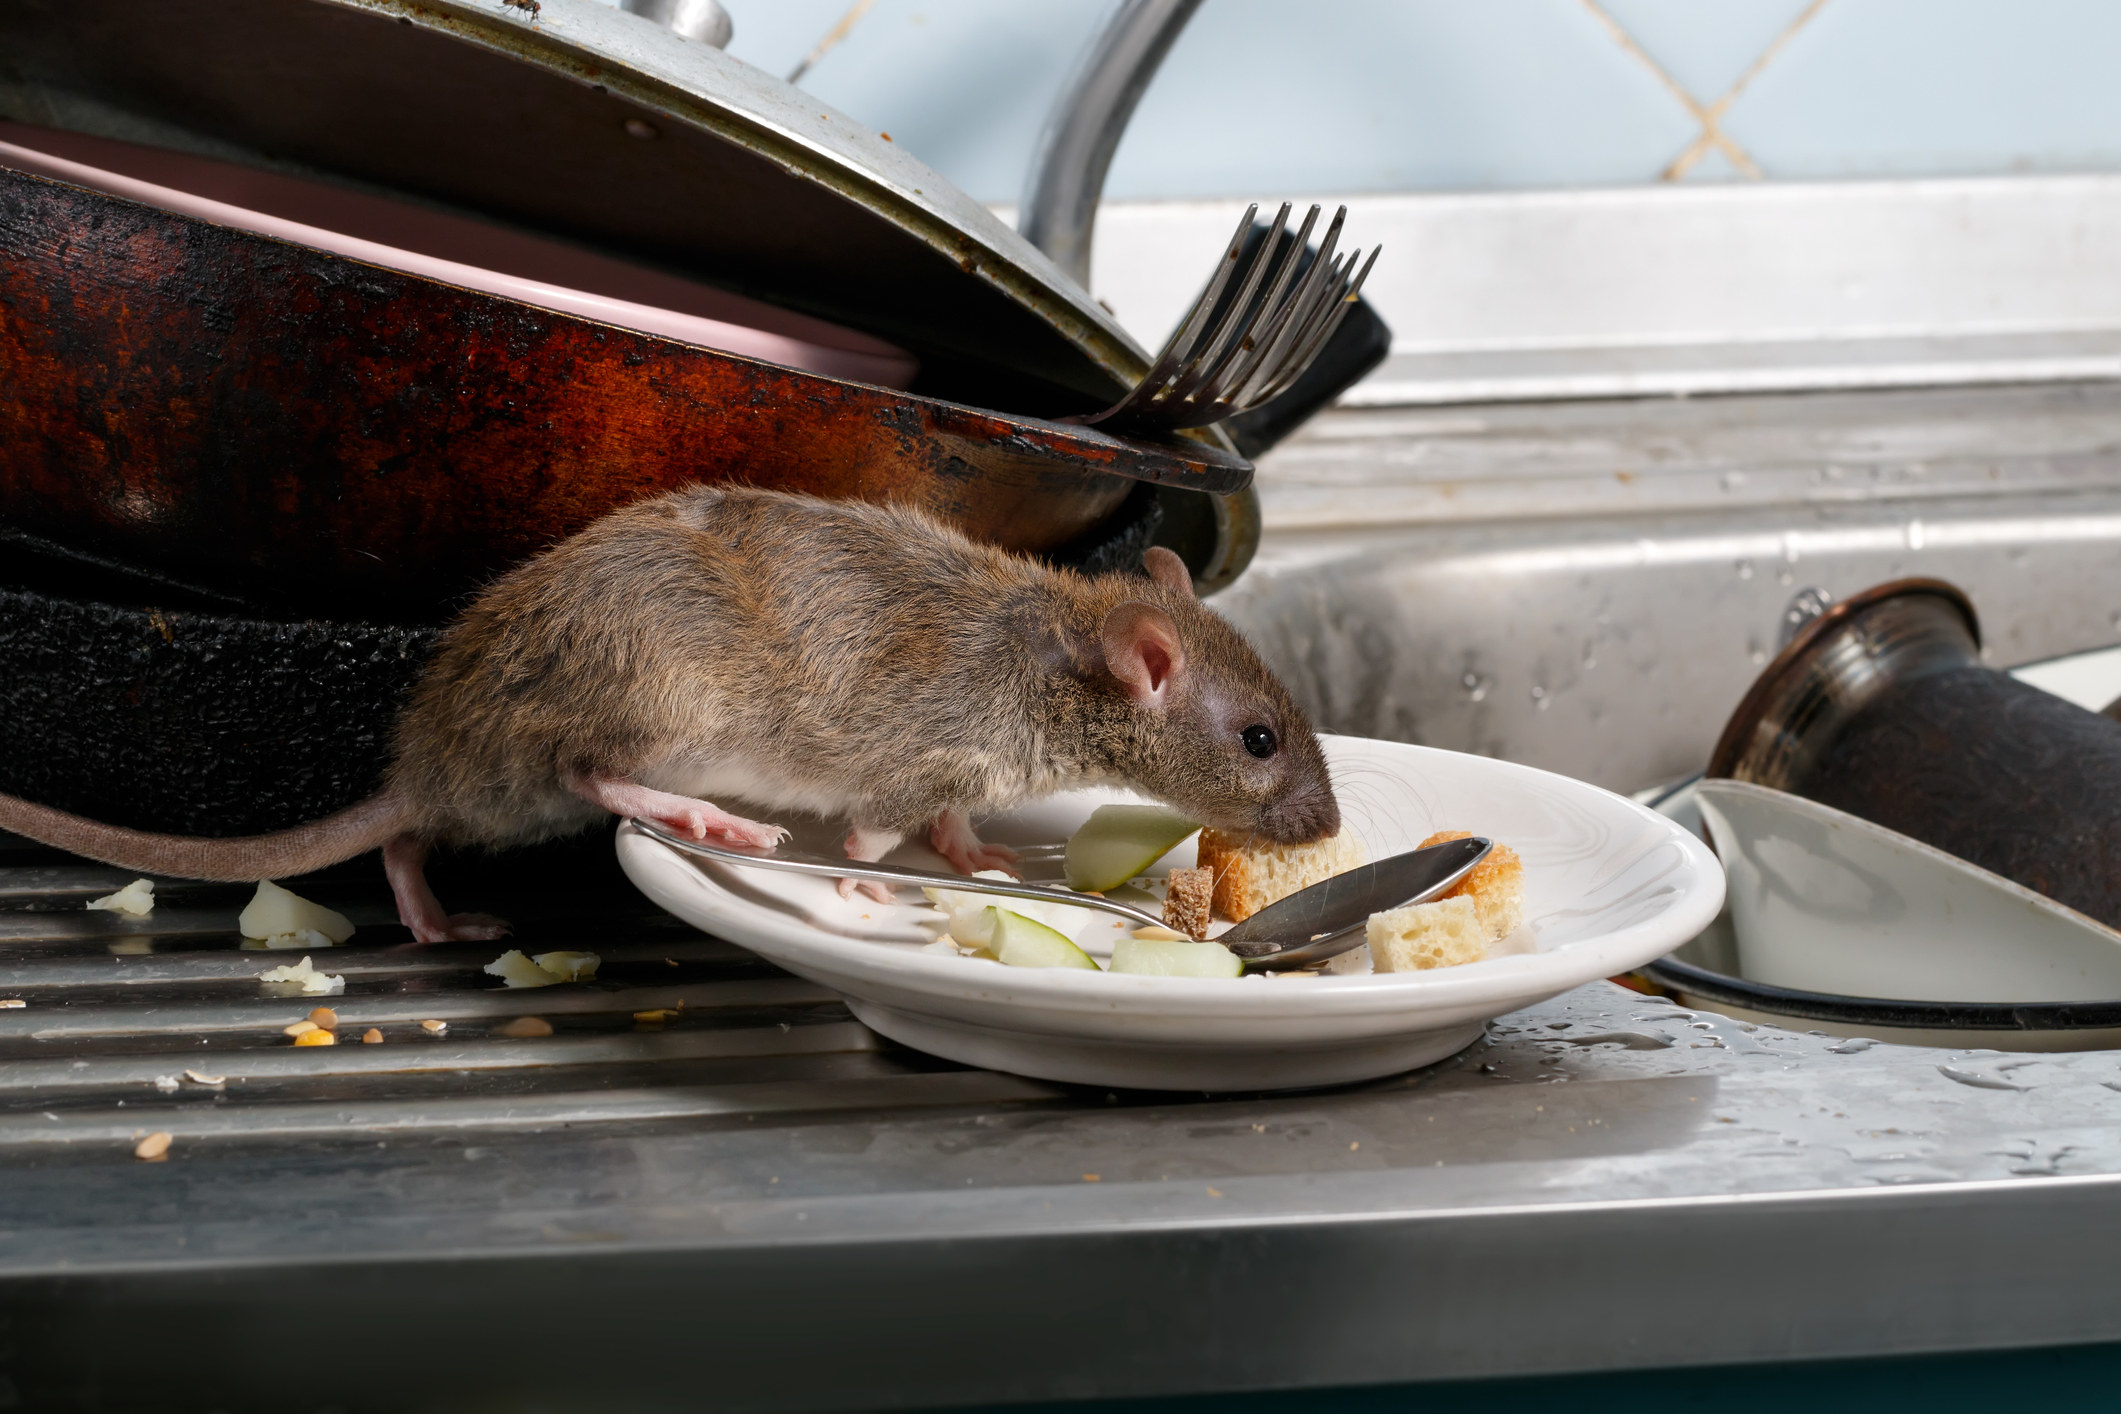 a rat in a kitchen